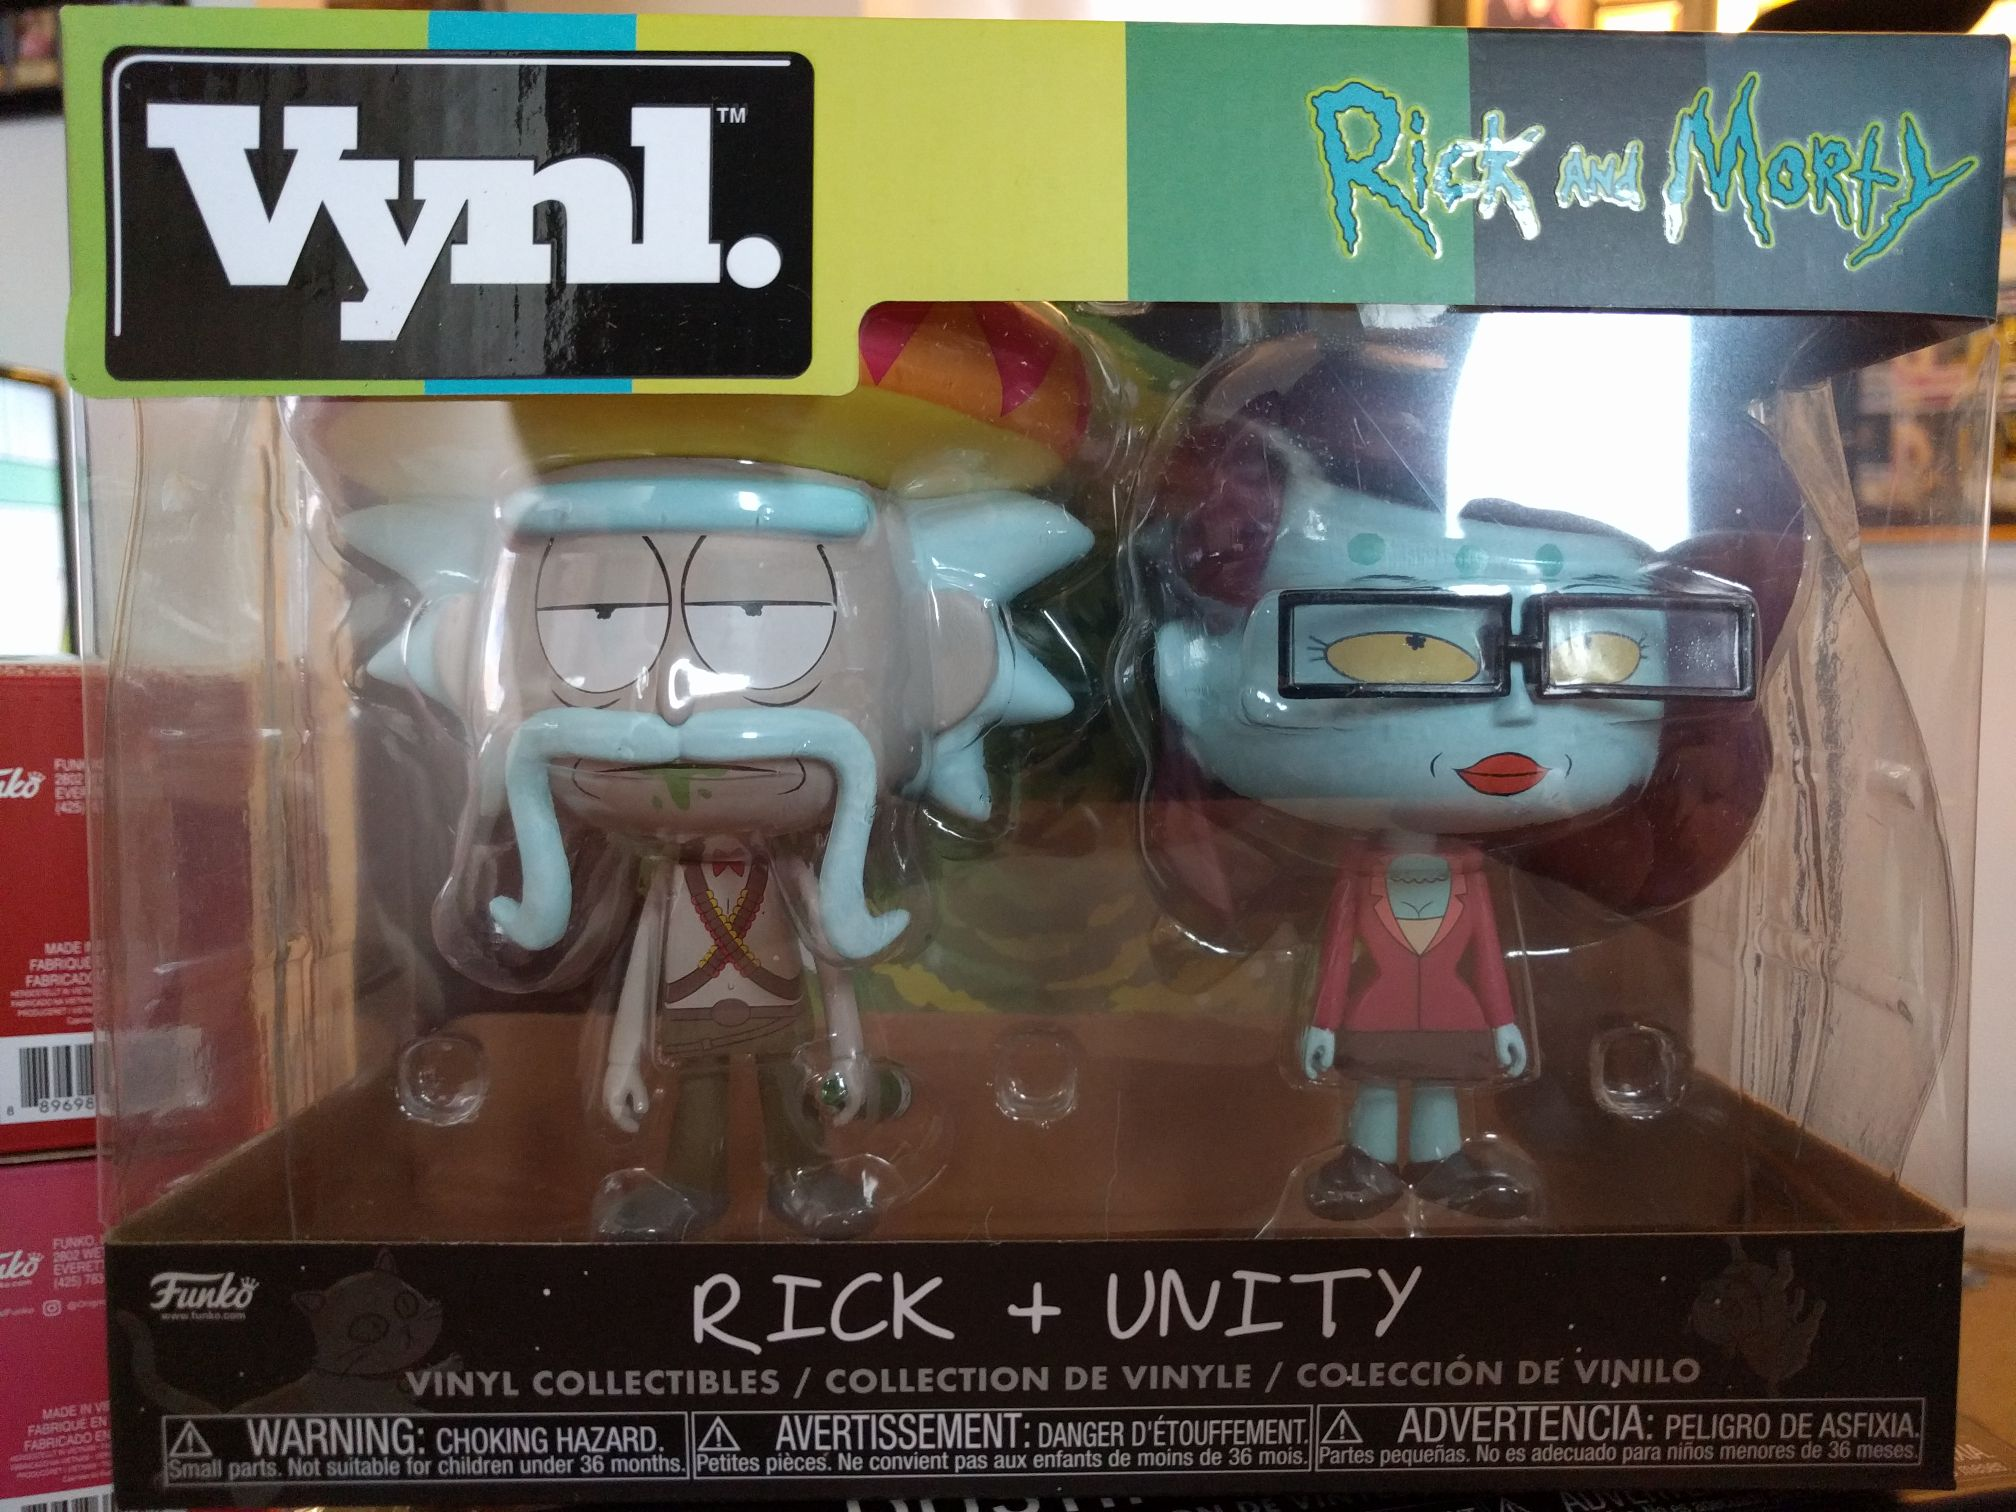 Rick + Unity Funko - Vynl front image (front cover)